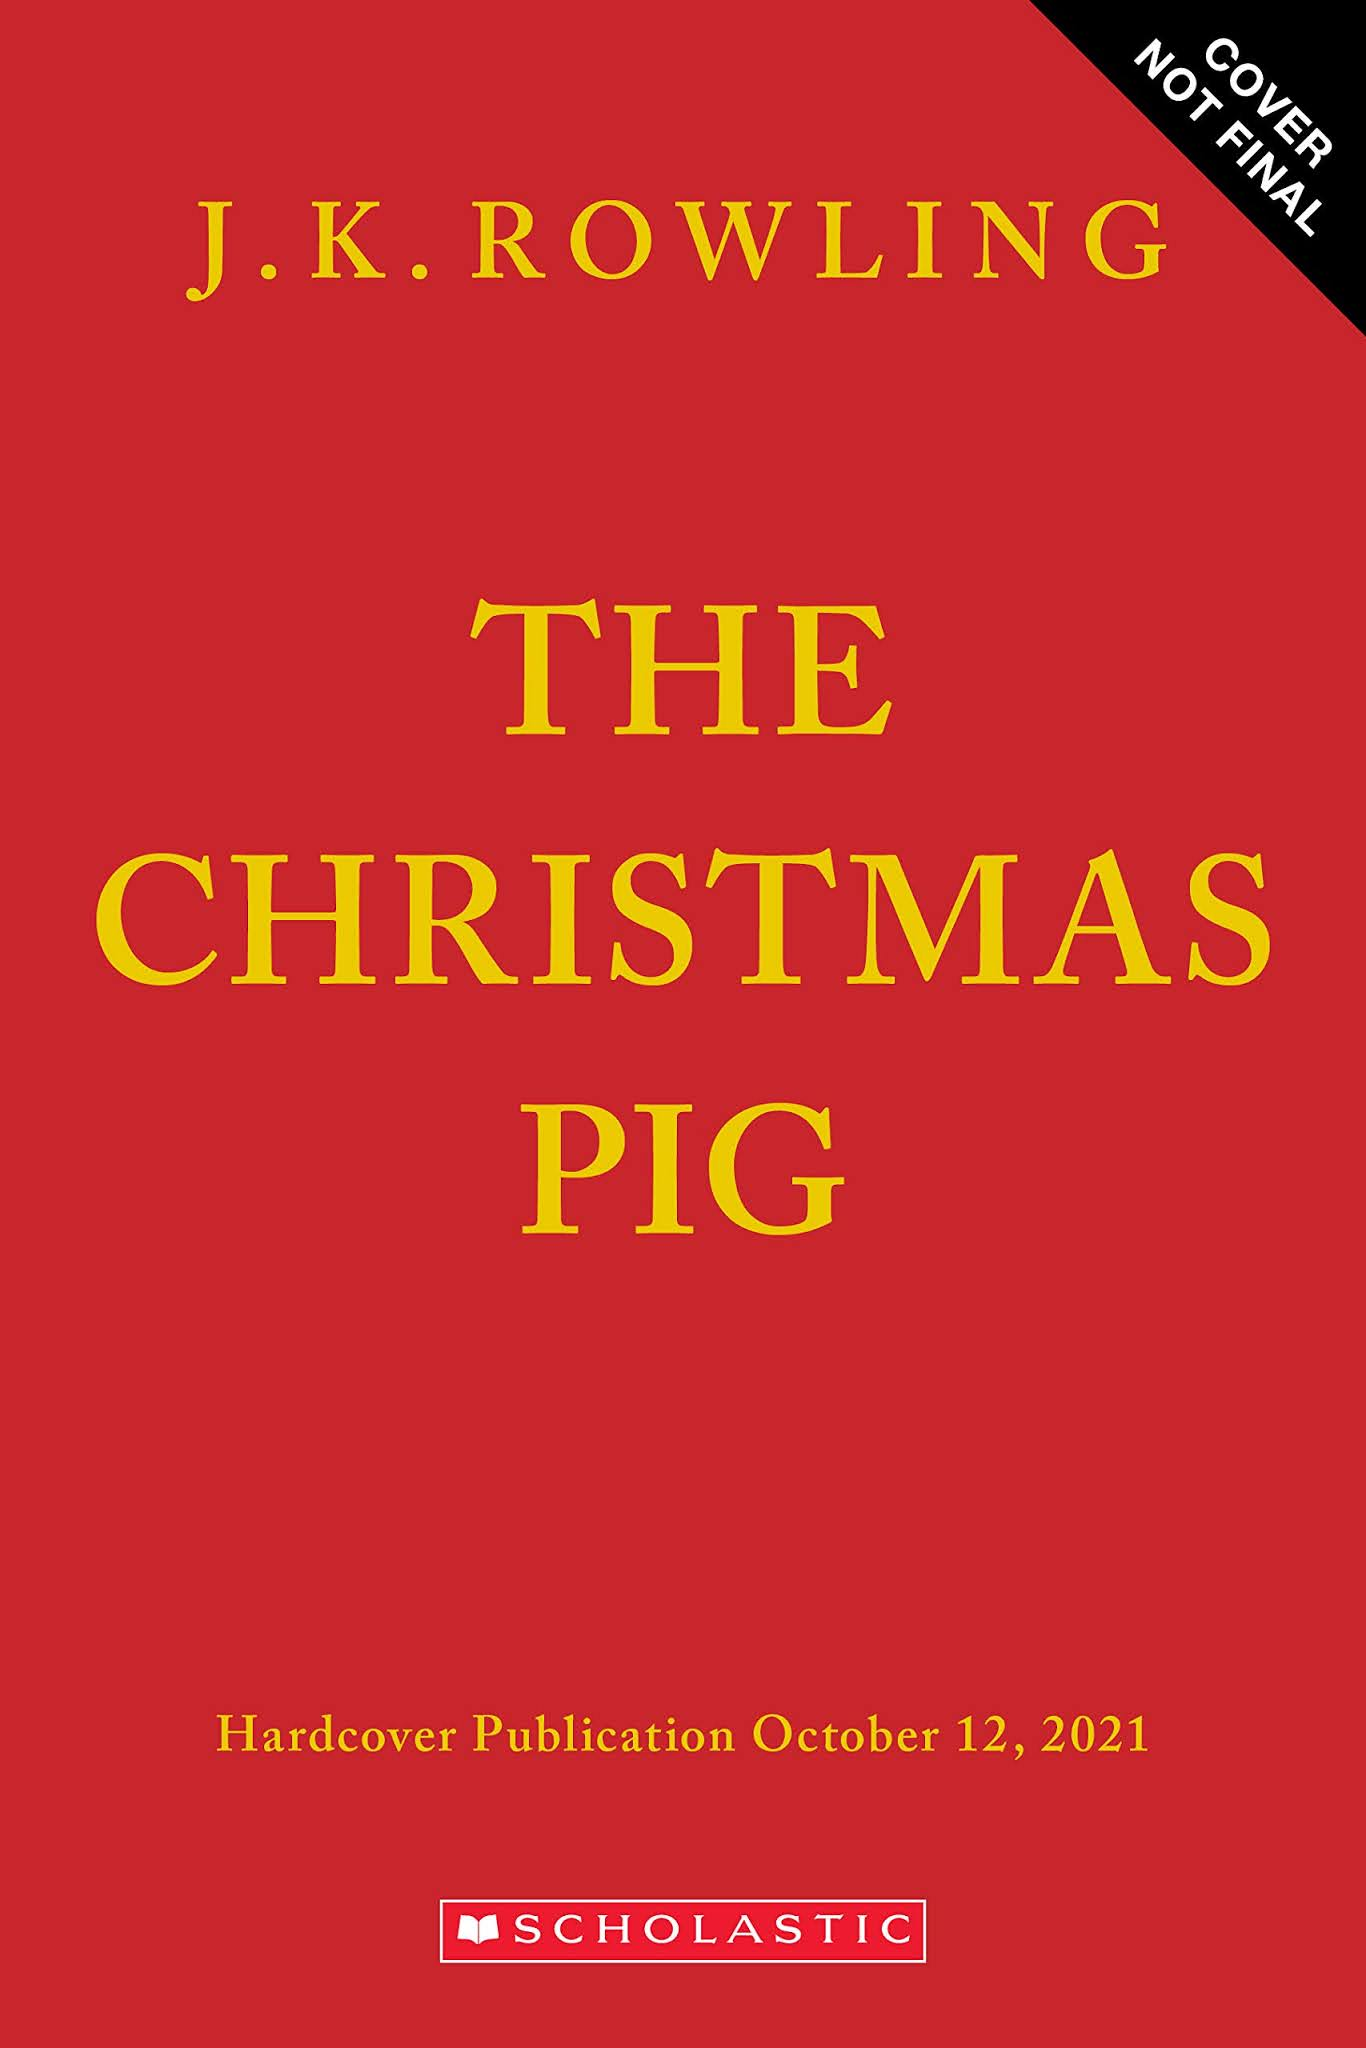 The Christmas Pig by J. K. Rowling